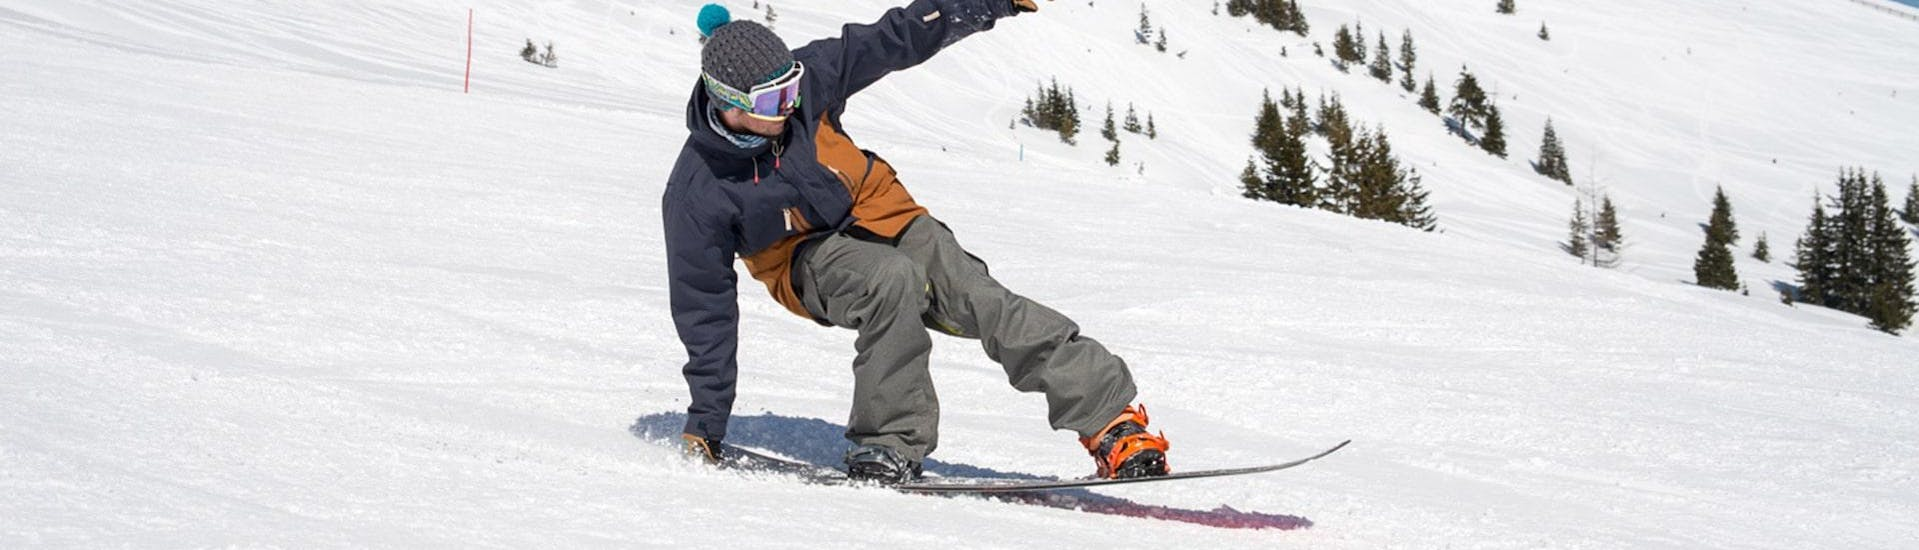 A snowboarder is practicing his freestyle moves during one of the Freestyle Snowboarding Lessons - All Levels with BOARD.AT.